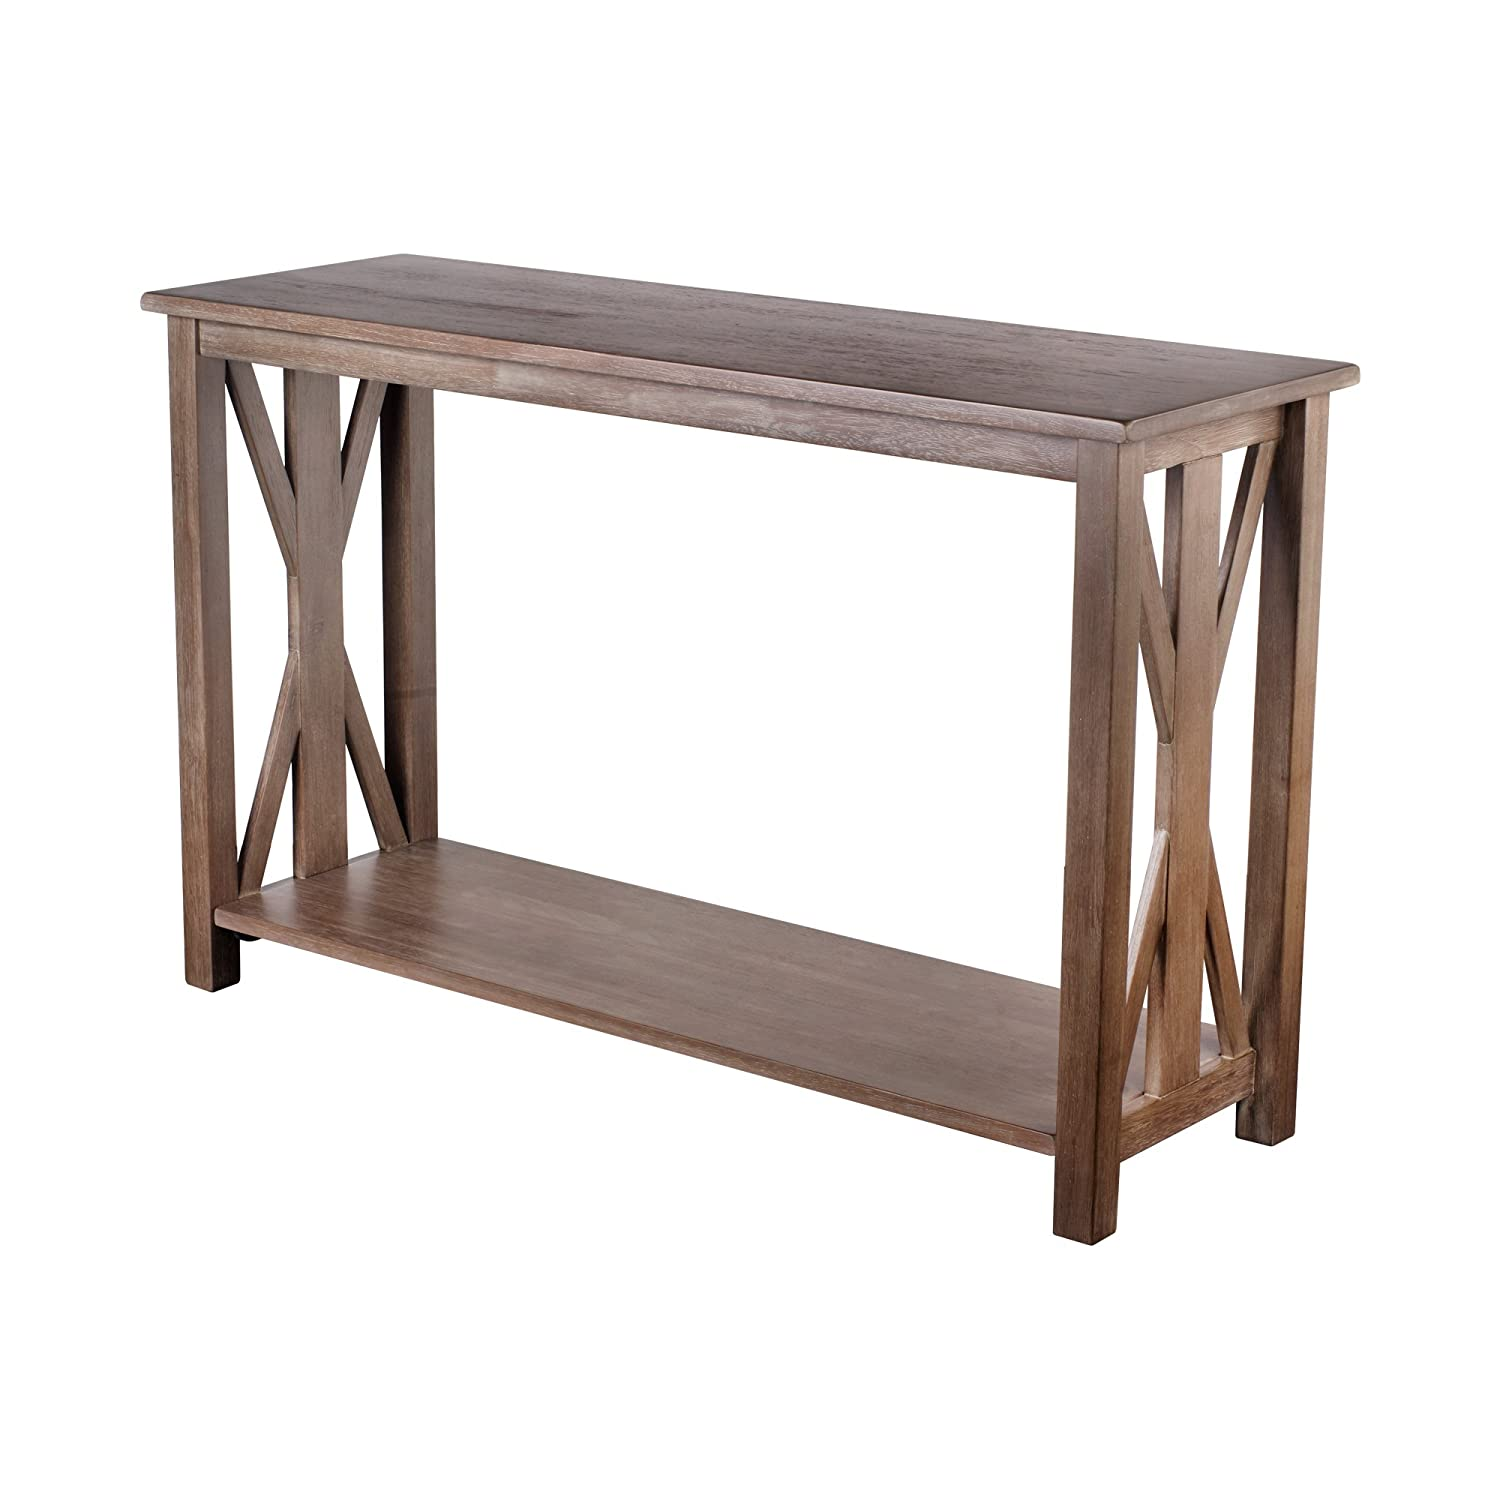 Amazon Sofa Table Solid Wood Rustic Farmhouse Style Console